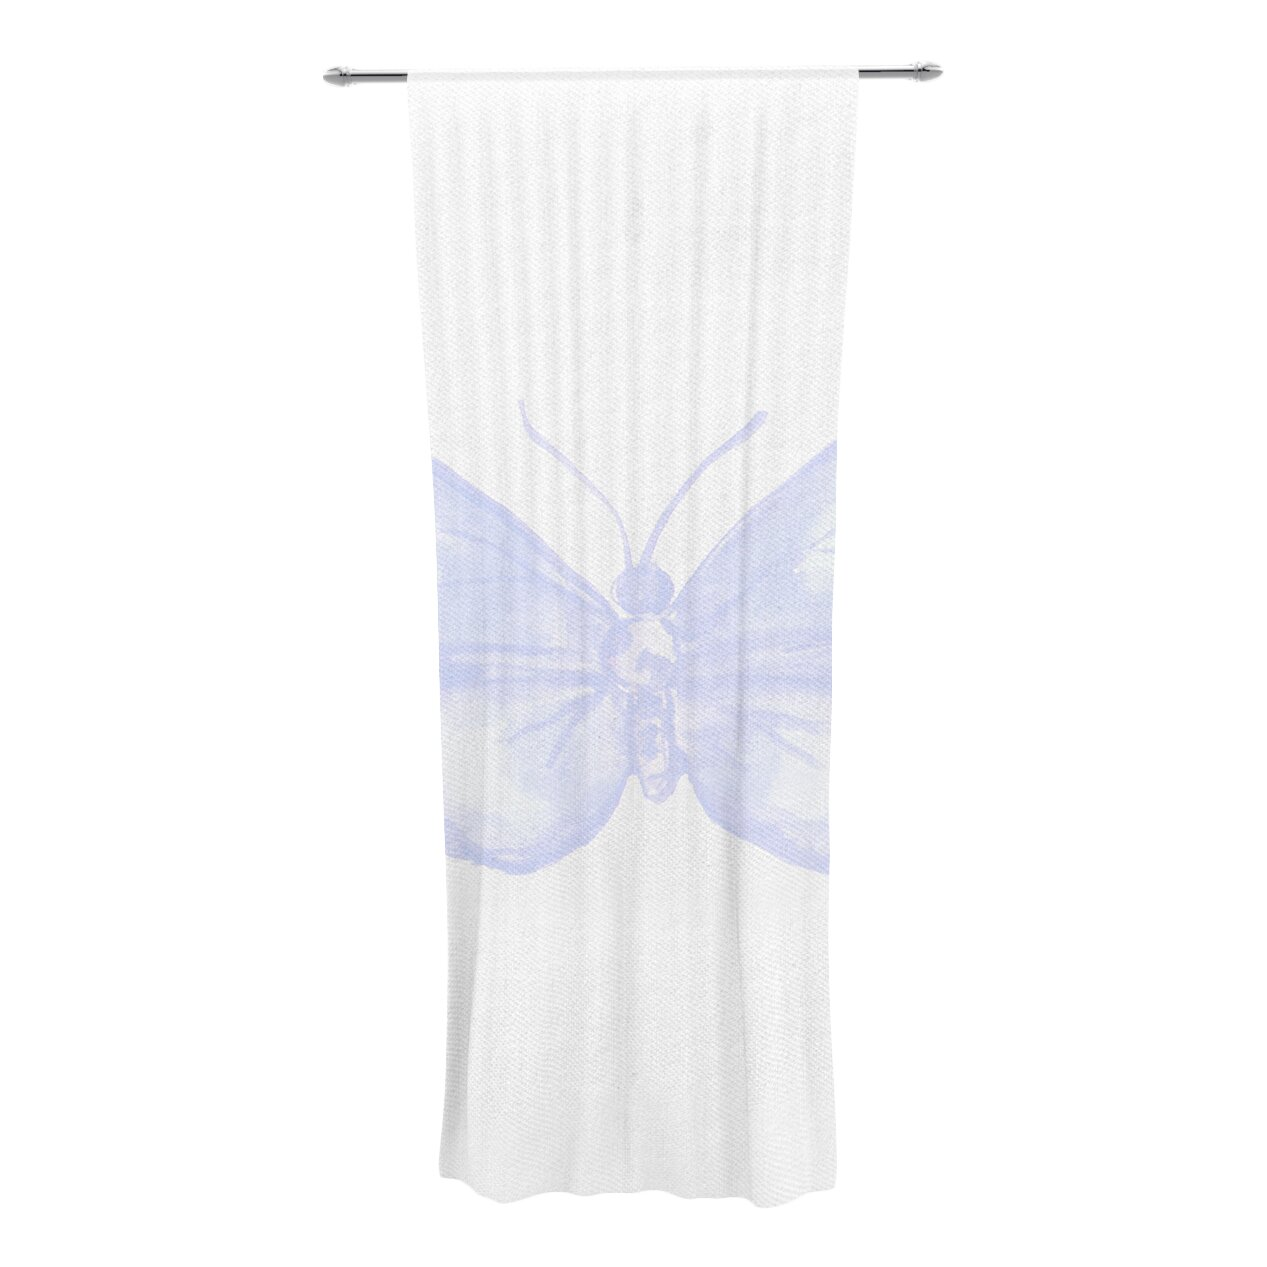 Lavender Butterfly Curtain Panel by KESS InHouse